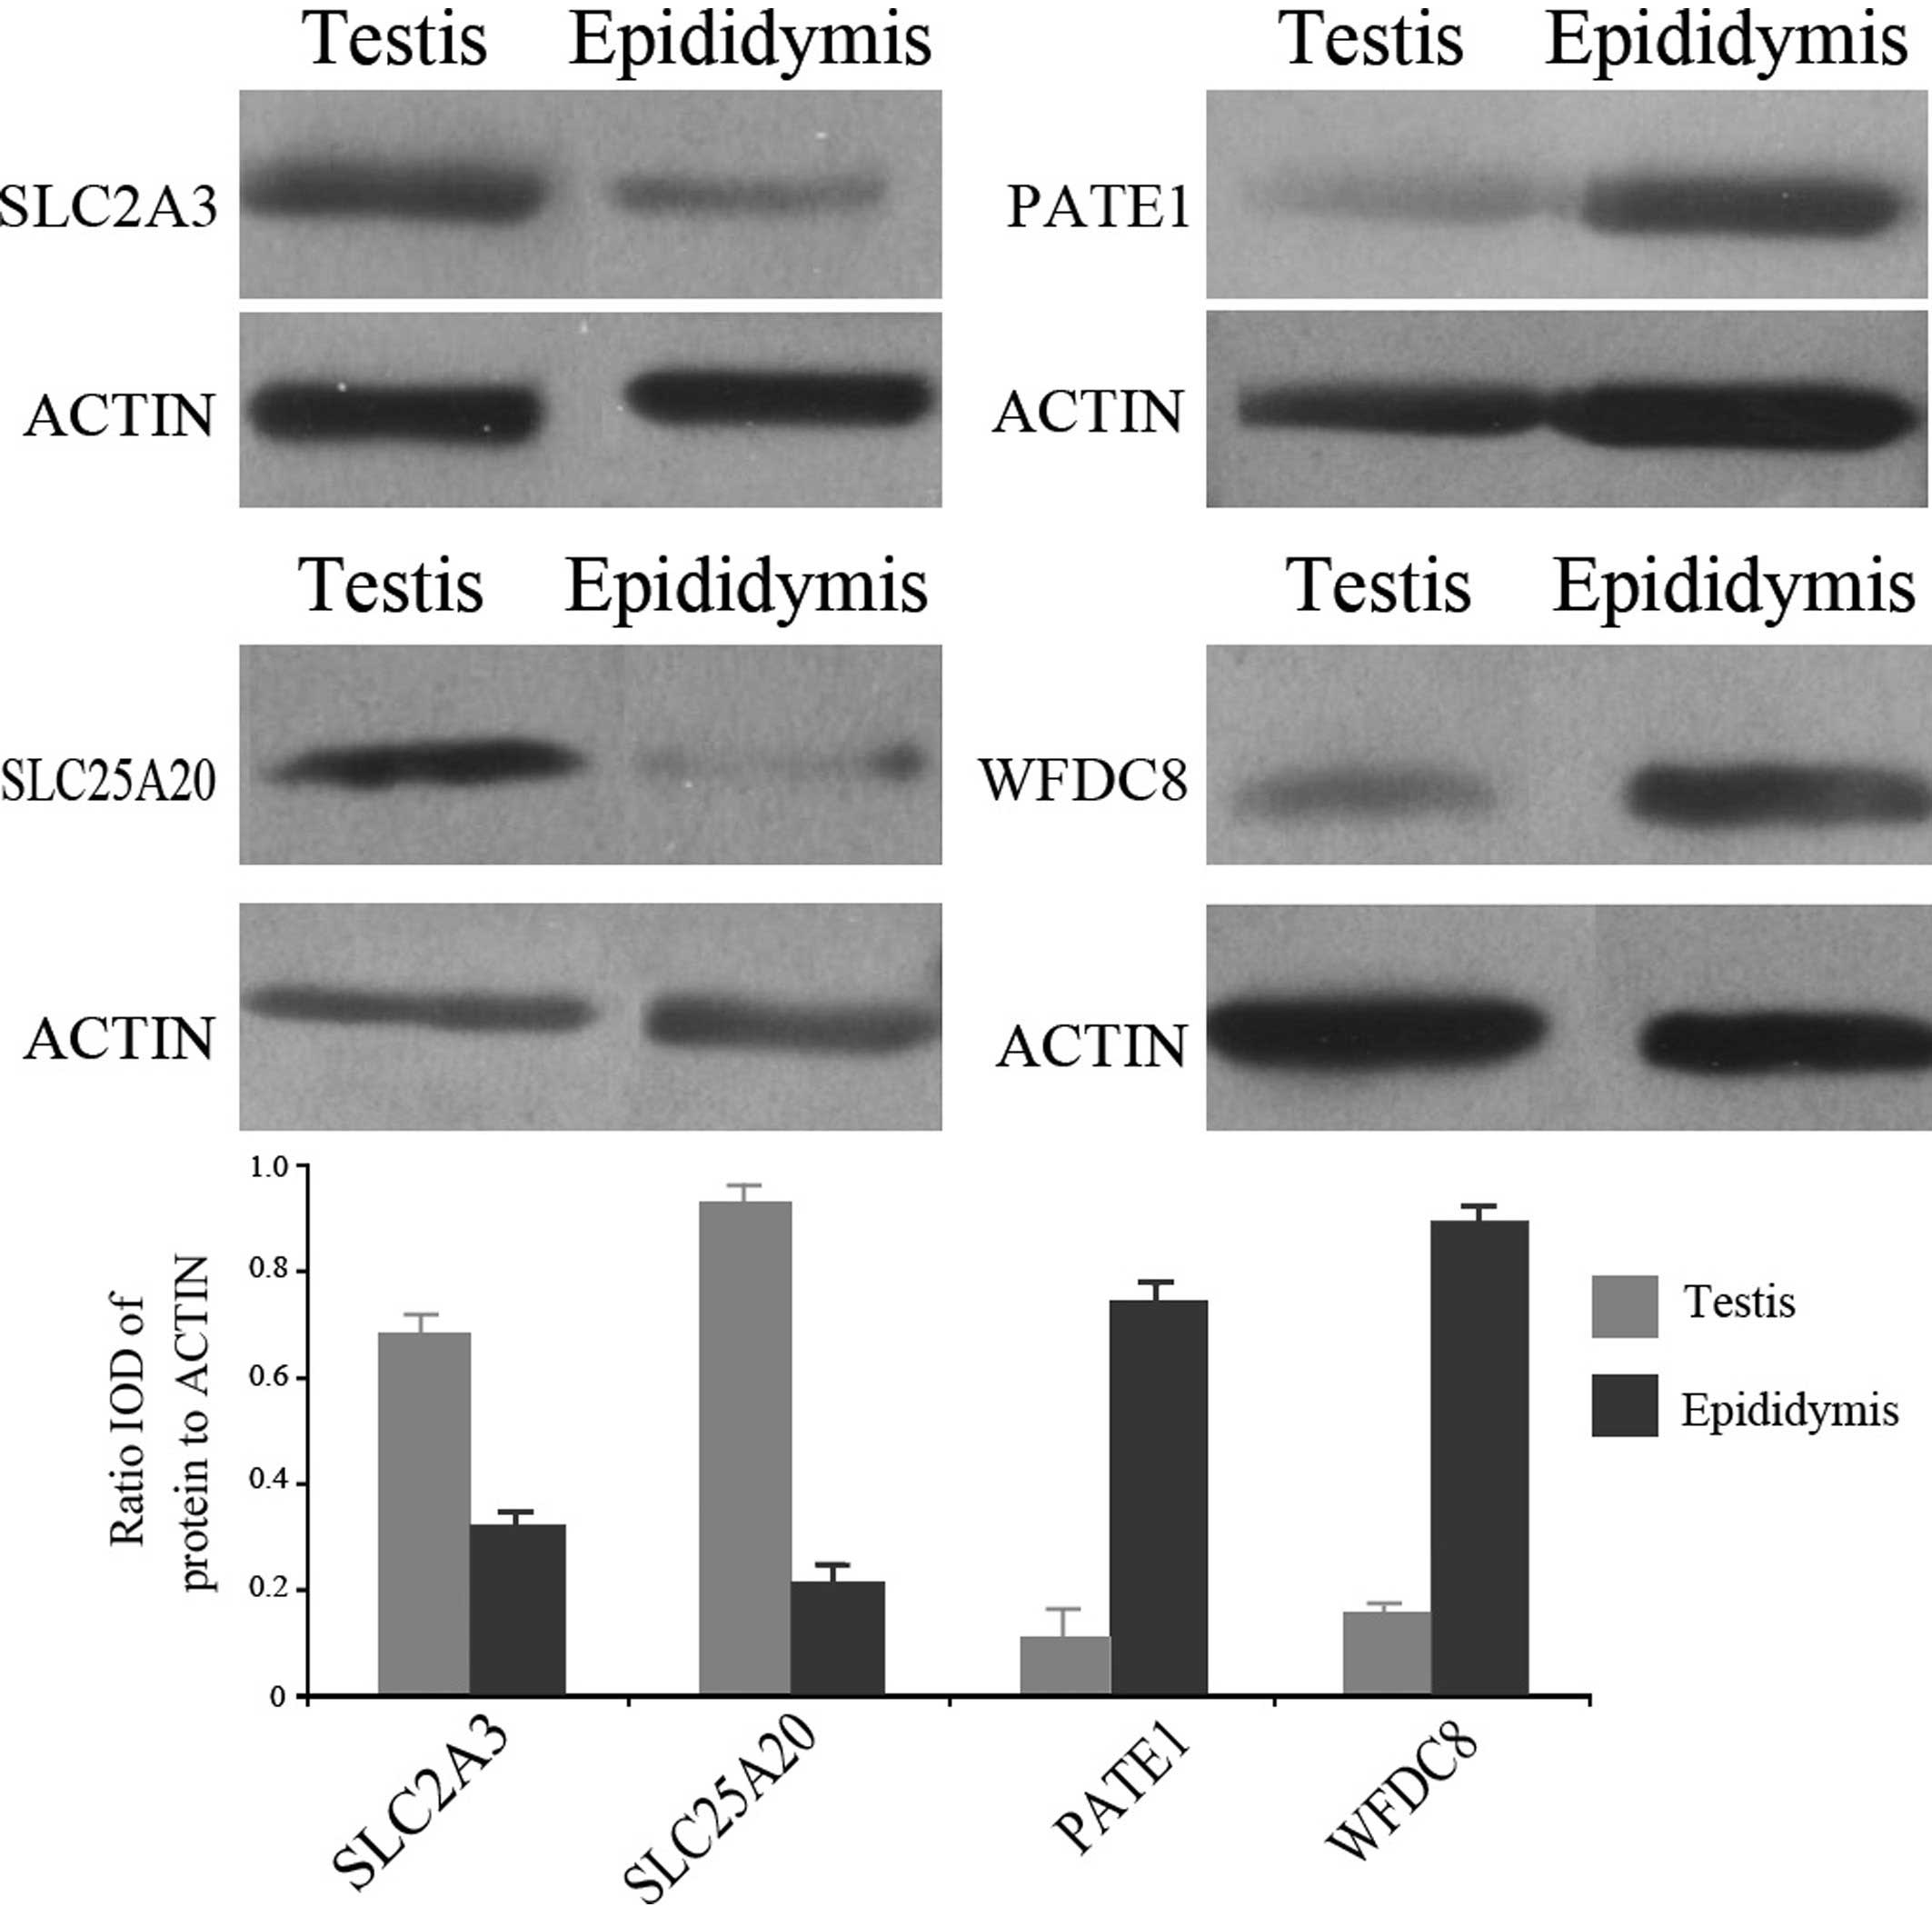 Indepth Mapping Of Human Testicular And Epididymal Proteins And